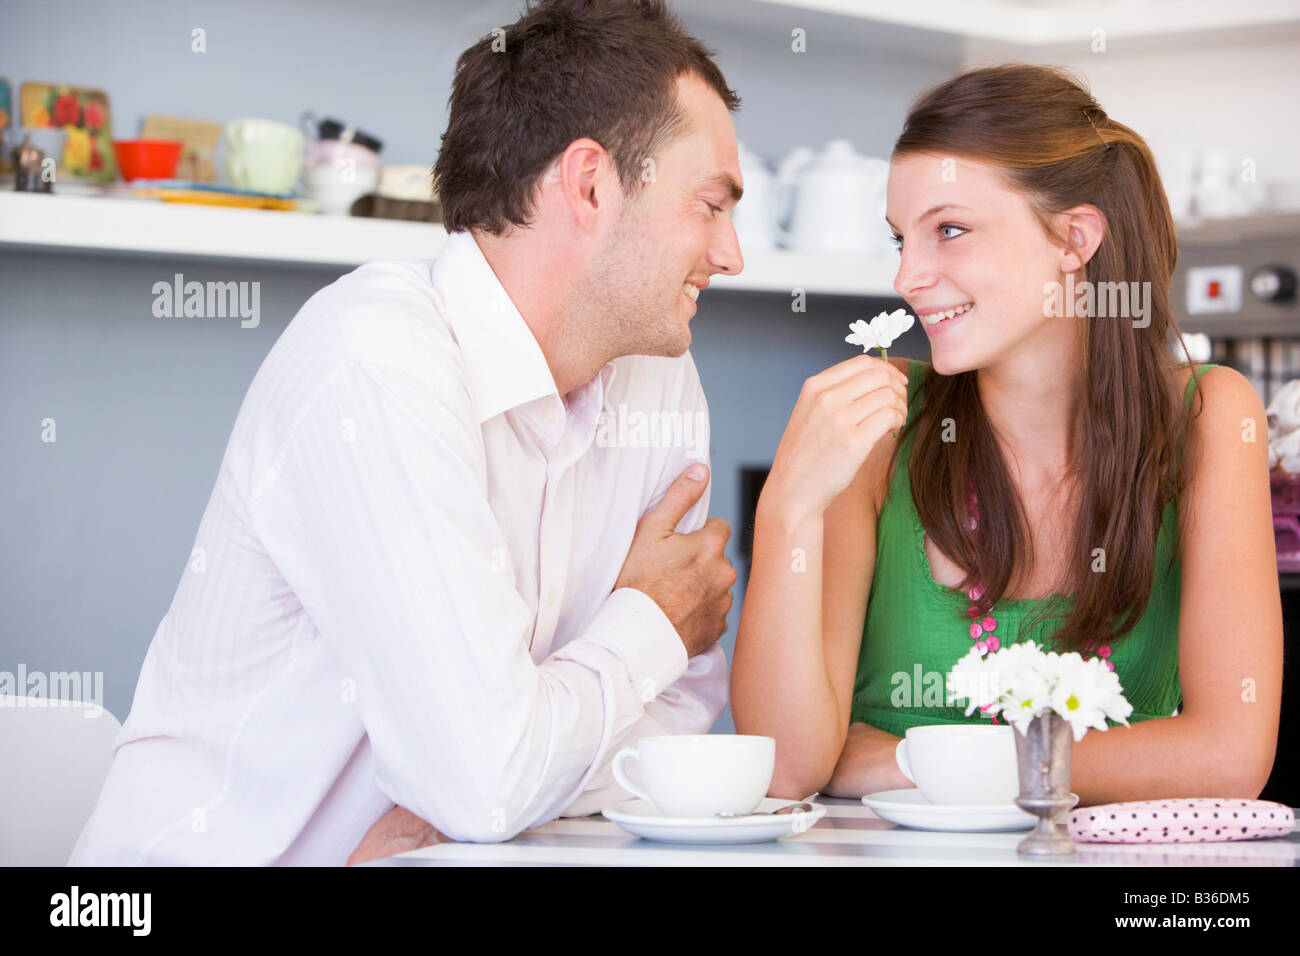 Young couple having tea in a cafeteria - Stock Image